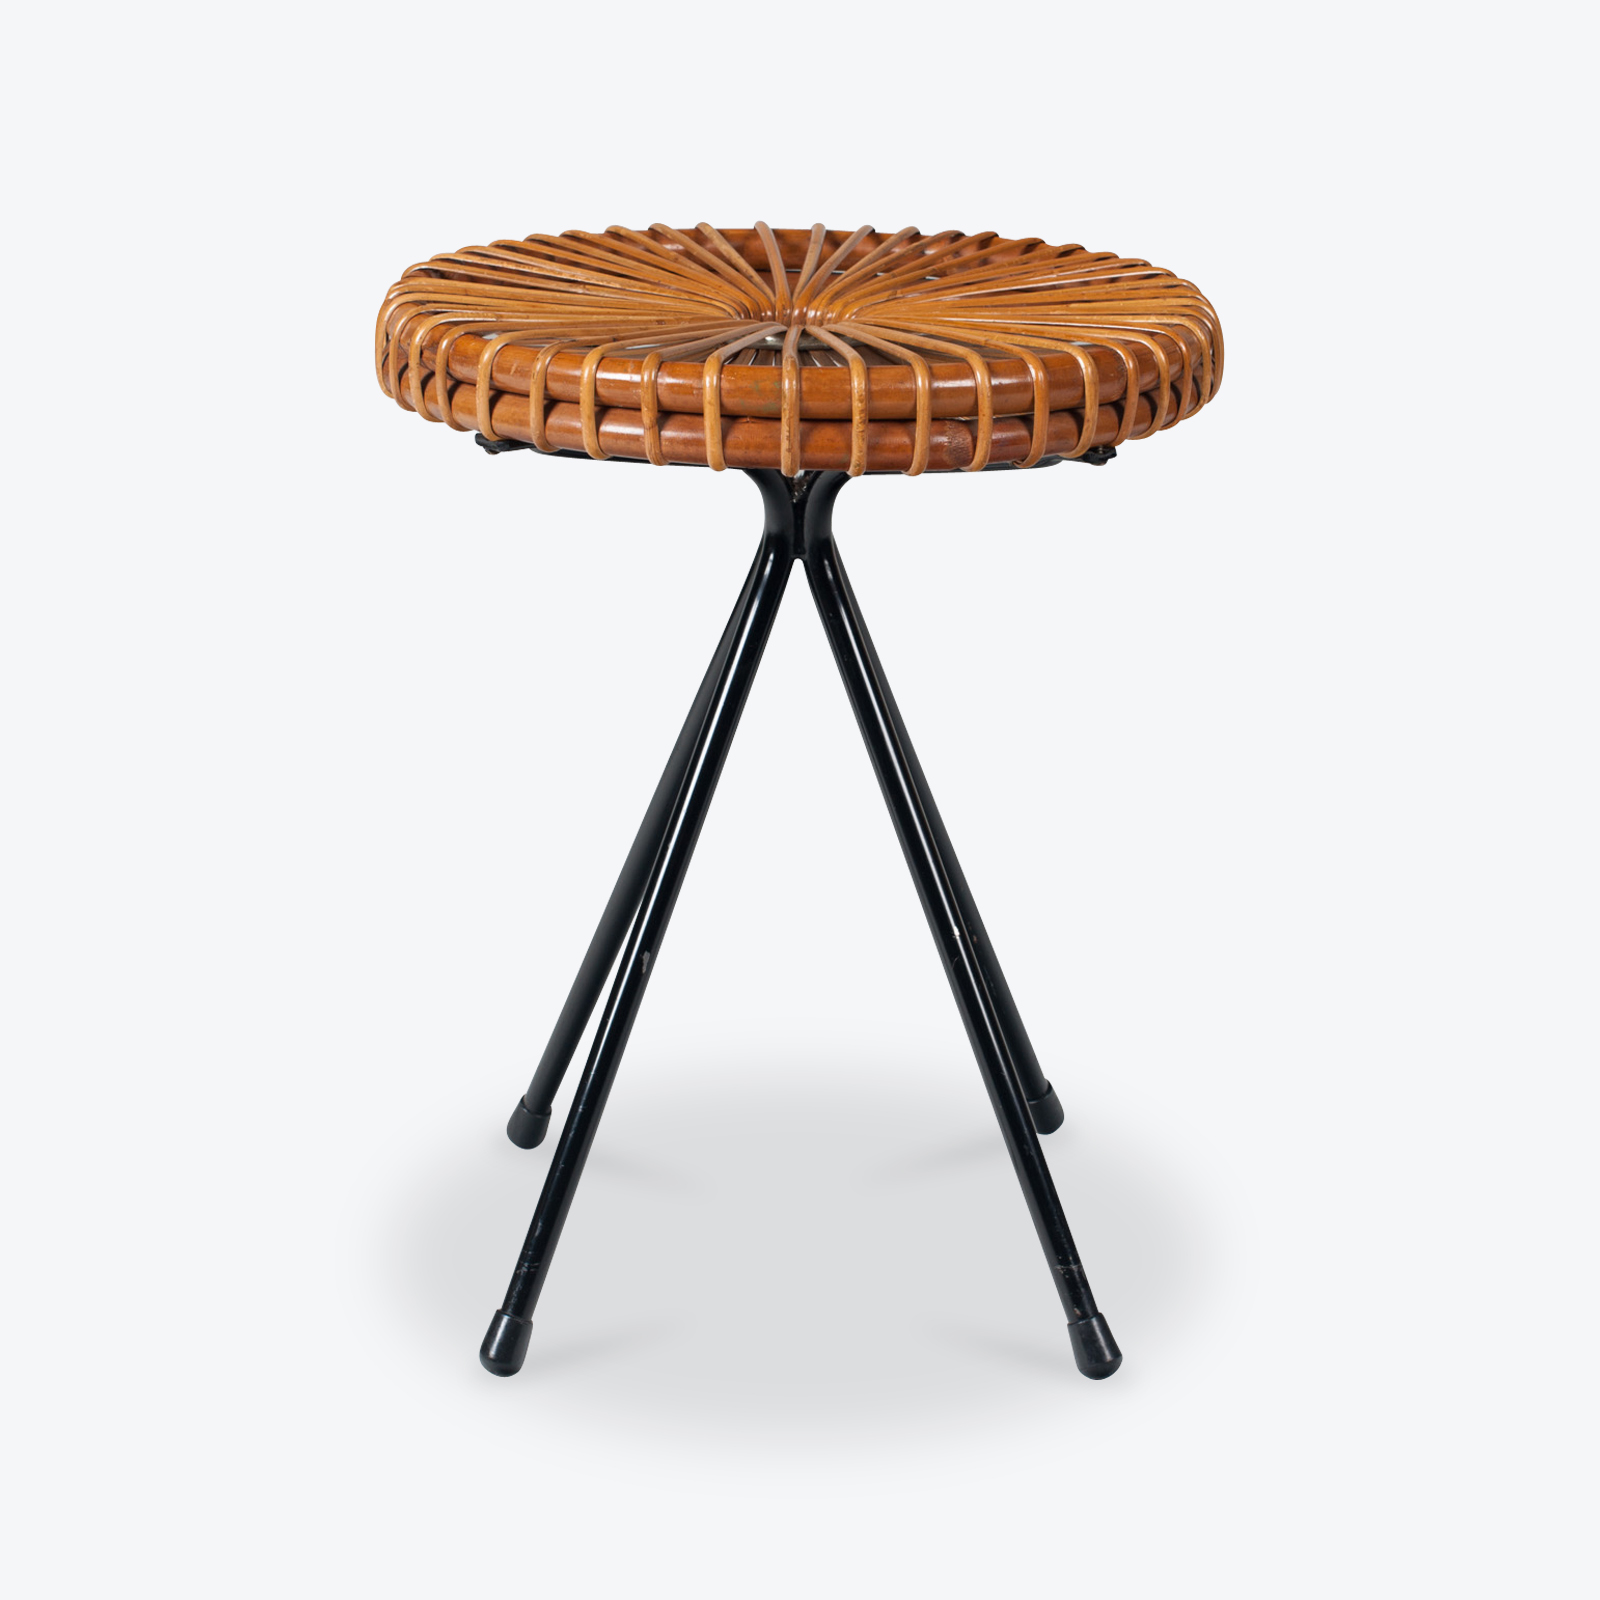 Ratten Stool By Dirk Van Sliedregt For Rohe Noordwolde 1950s Netherlands 01